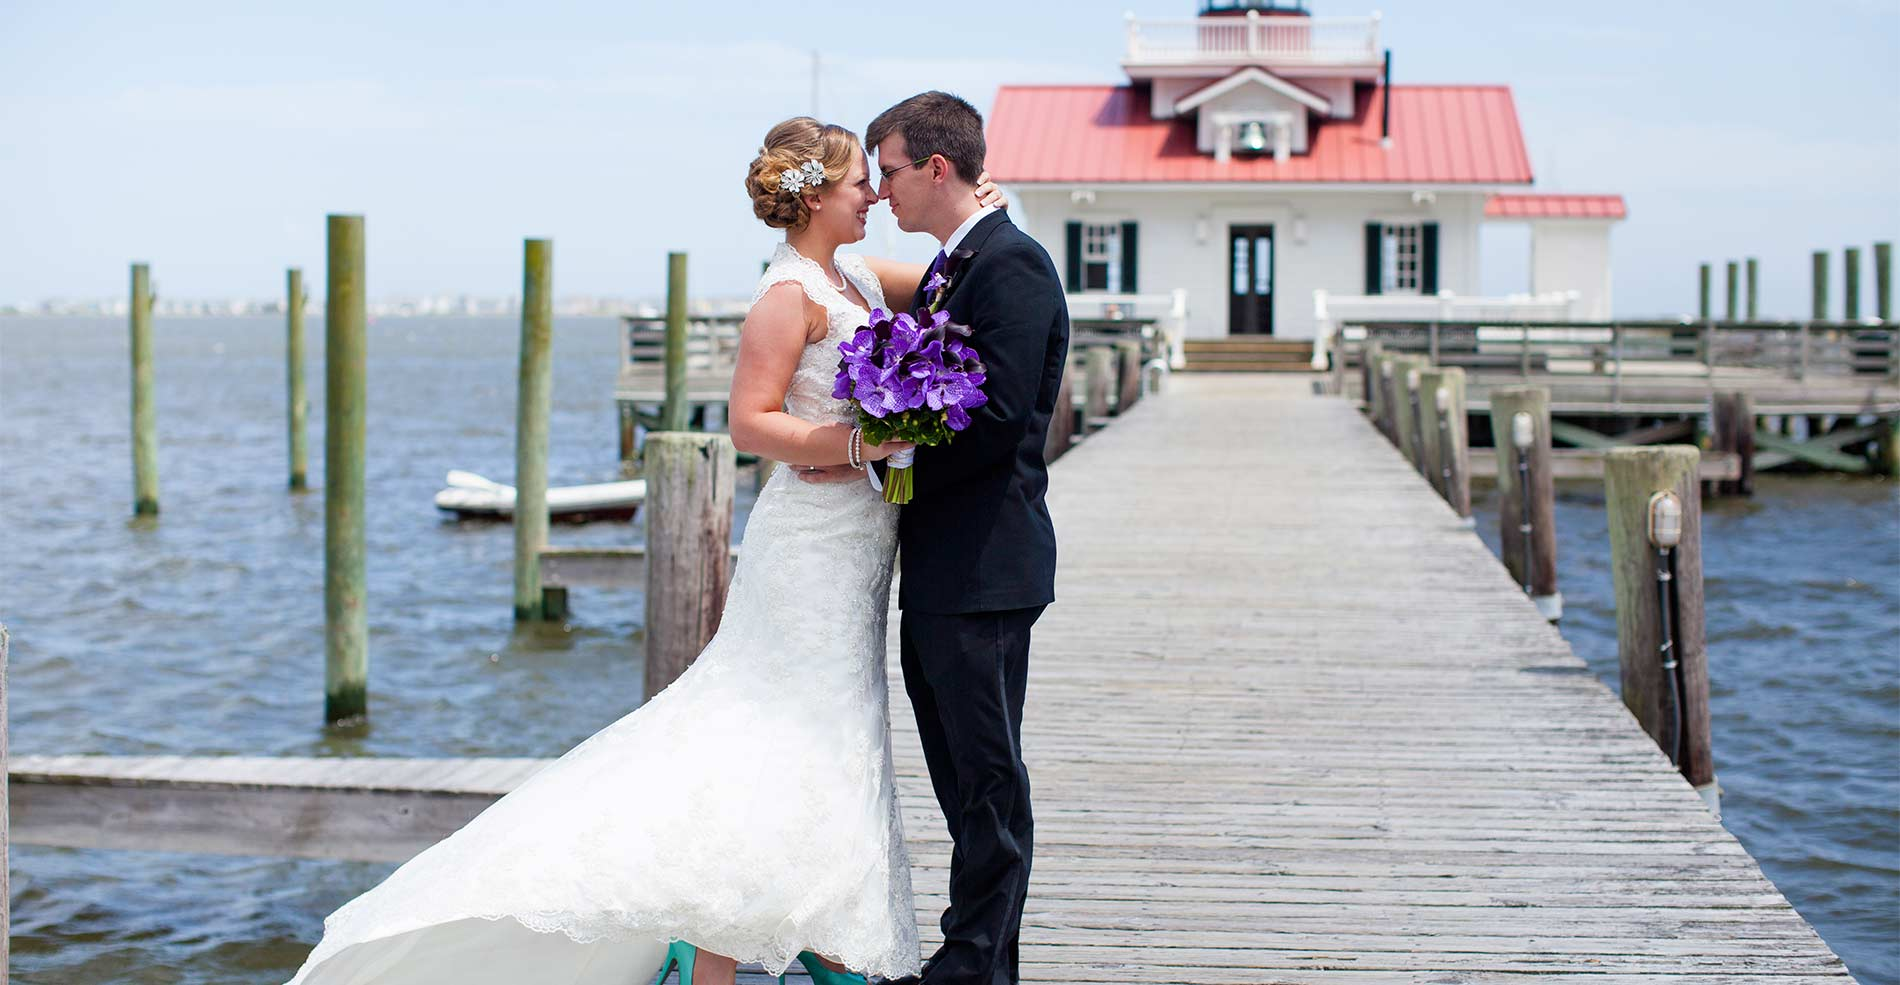 Wedding couple standing on pier with purple floral bouquet in hand between them. A little red building marks the background, set aganst the water.